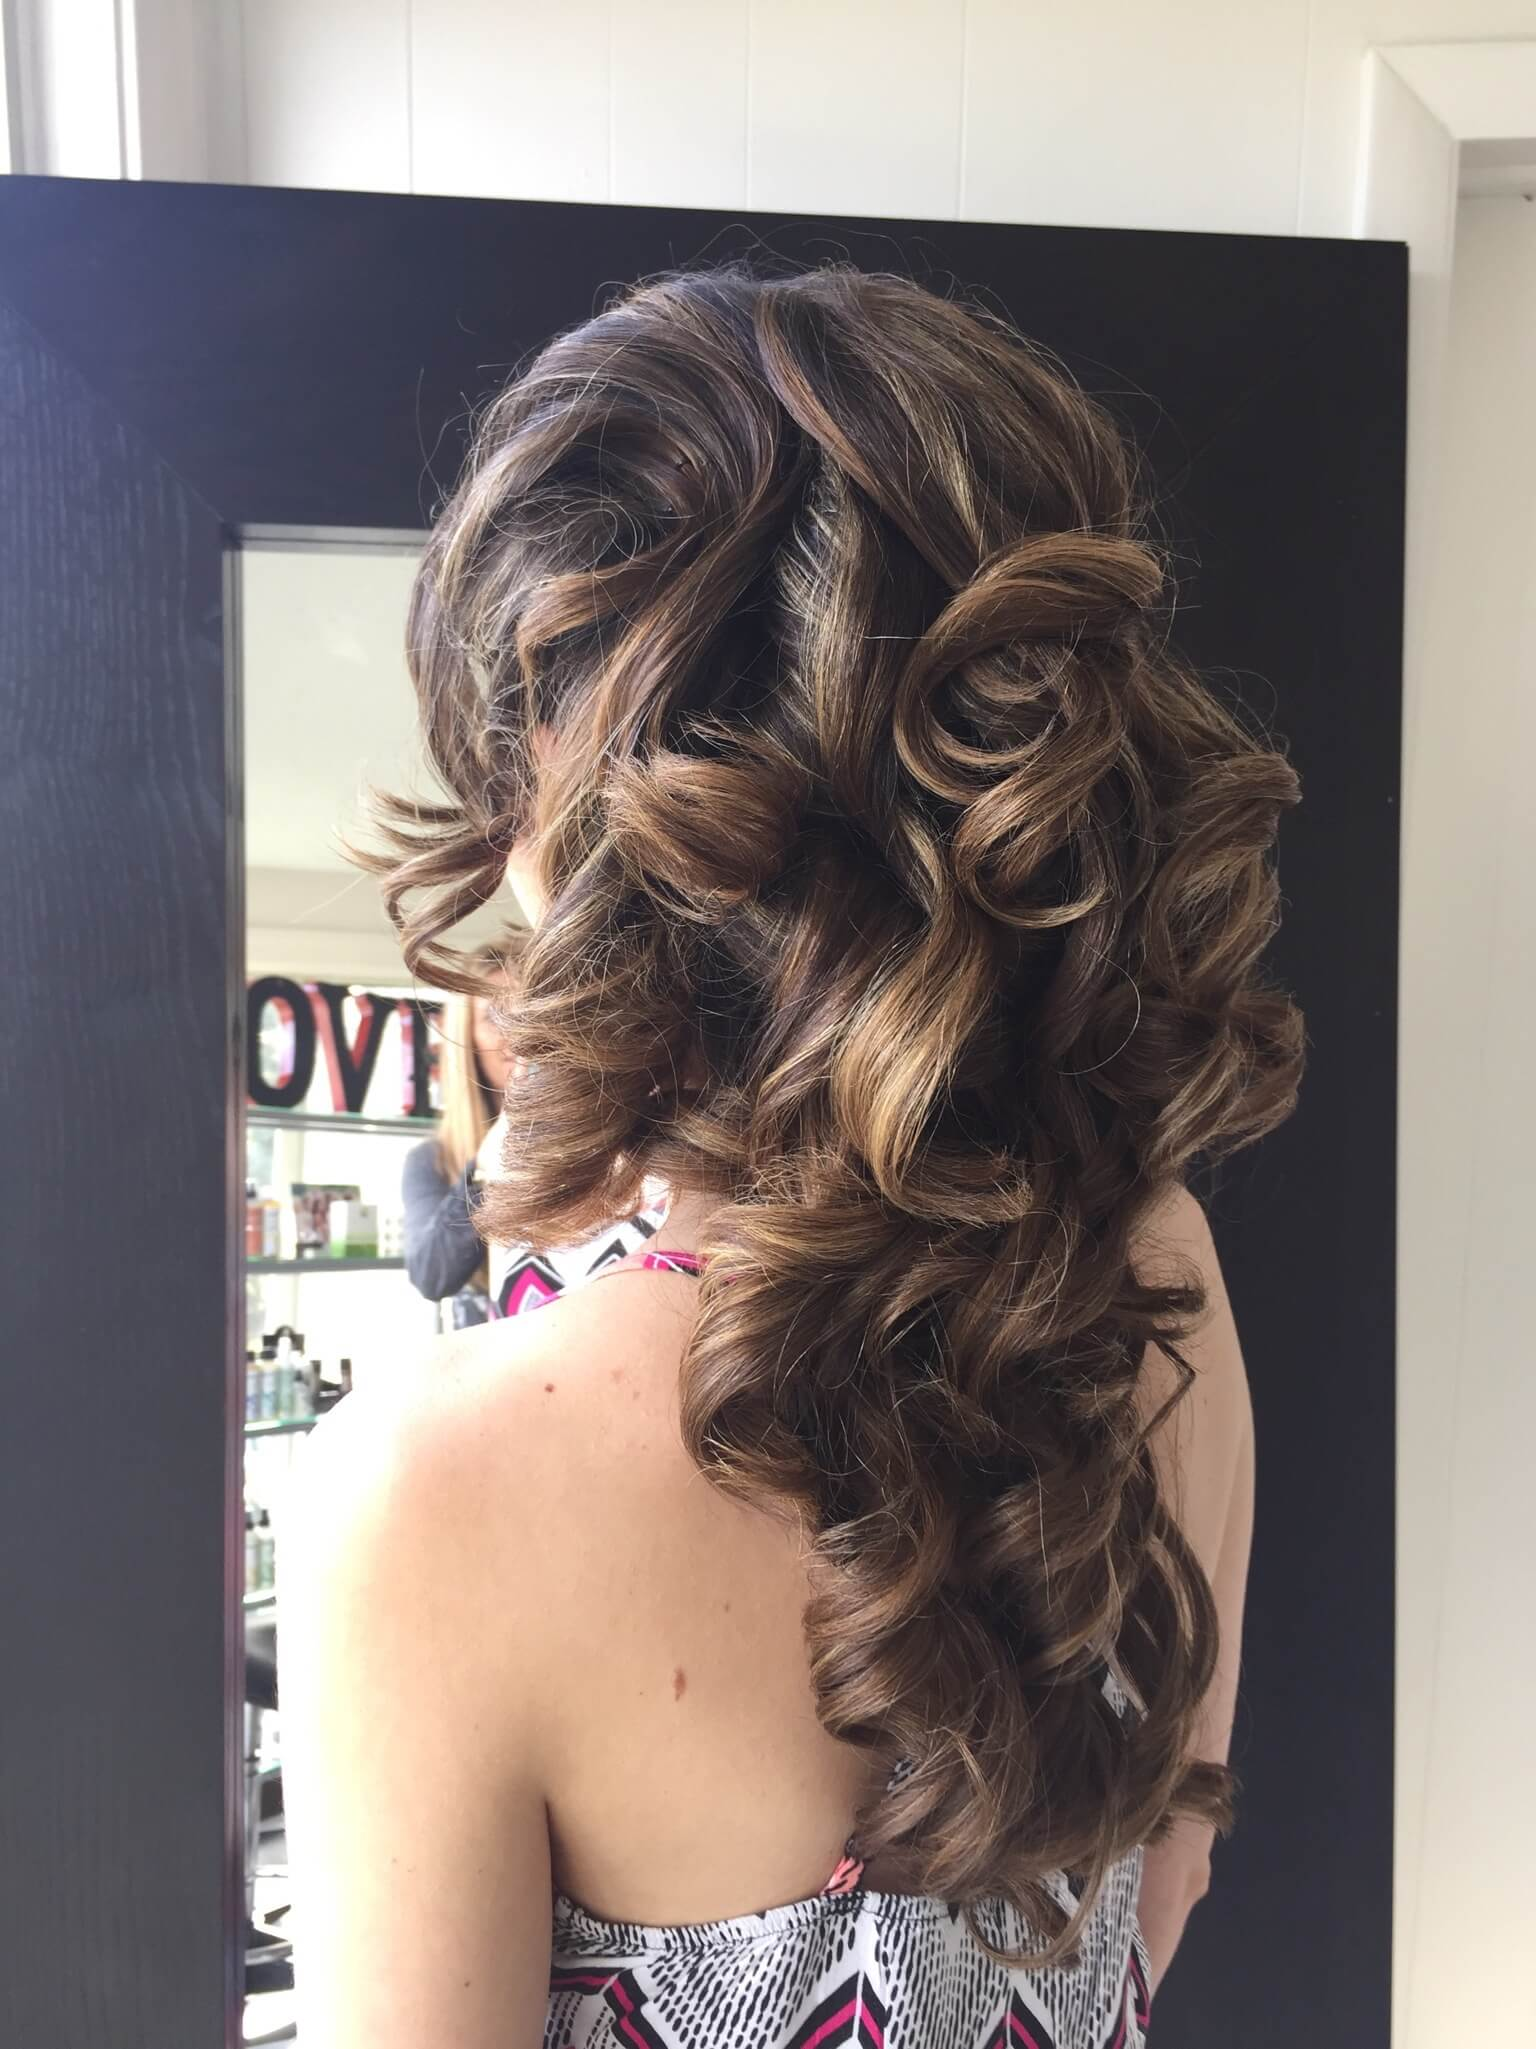 hair-salon-jacksonville-wedding-hairstyles-93